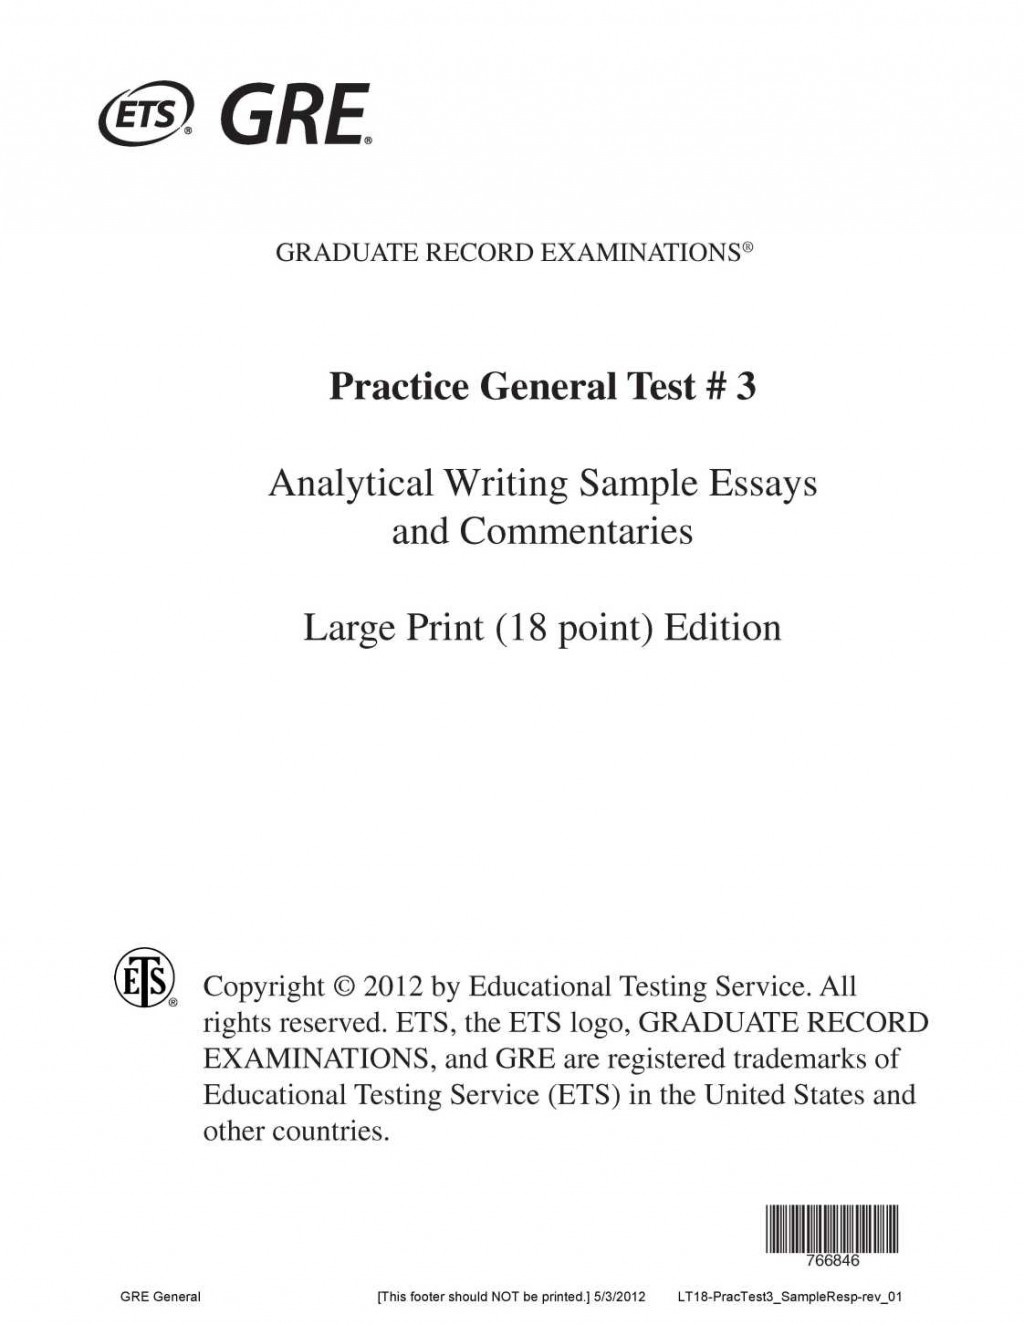 002 Gre Essay Topics Essays Issue Meet The Categories Of Writing Pdf Books Strategies Practices Preparation Tips Format Rare Argument Answers Magoosh Pool Large